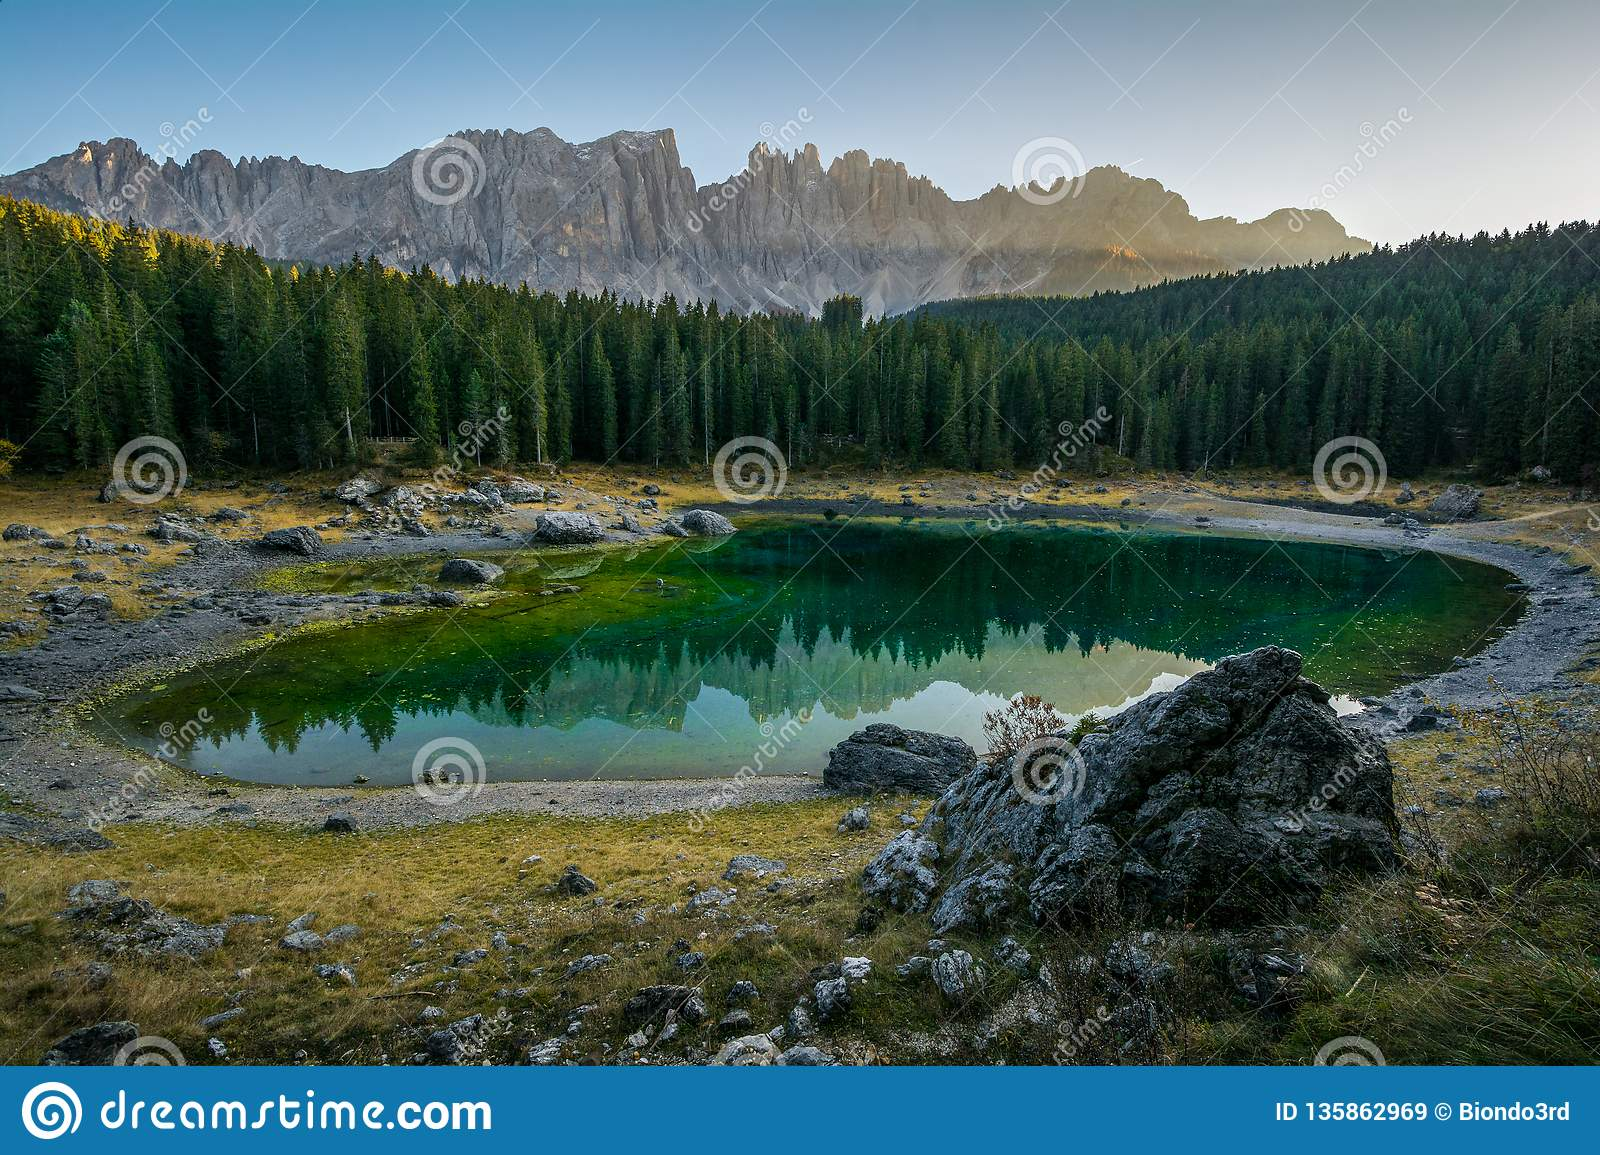 Reflection of Latemar in the clear water of Lake Carezza Karersee in Dolomite Alps, Trentino Alto Adige, South Tirol, Italy